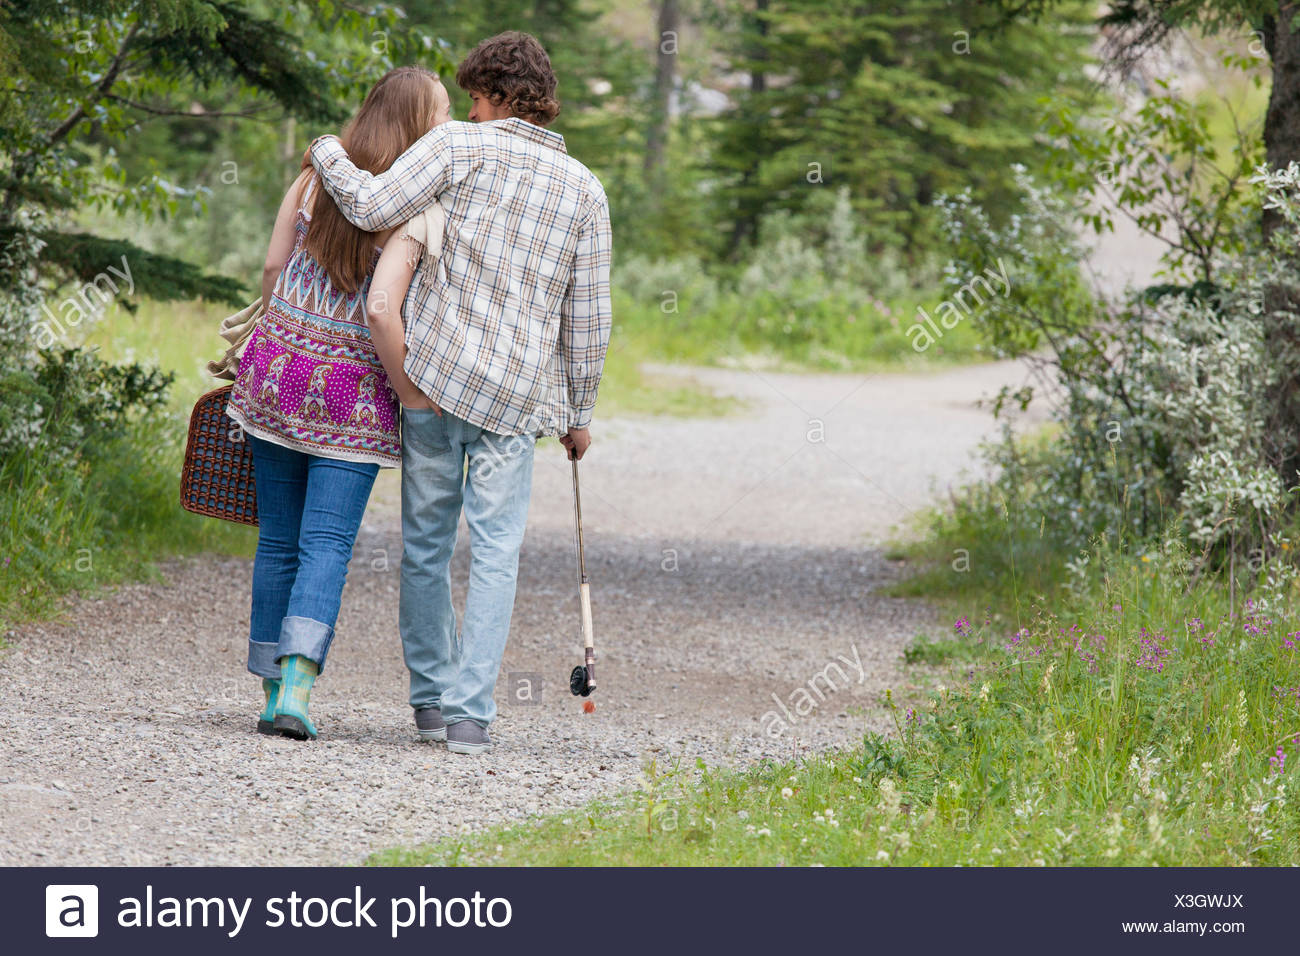 view from behind of young couple walking with picnic basket - Stock Image